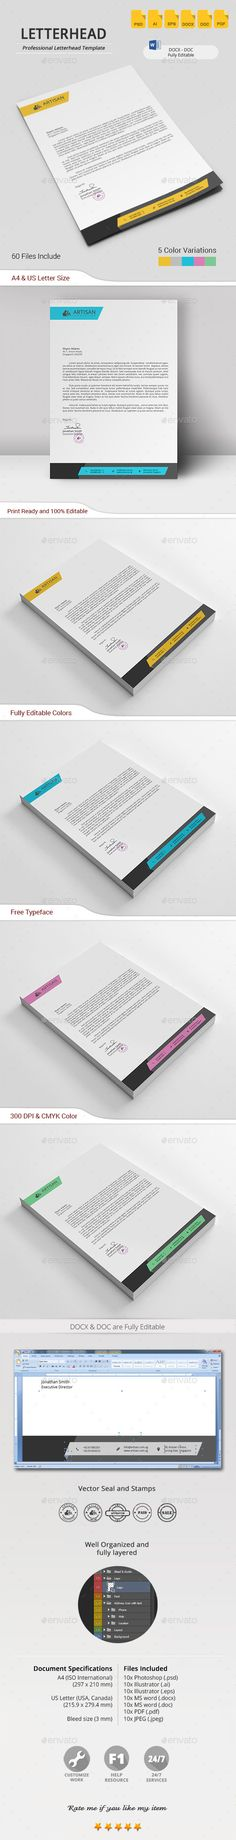 Letterhead Company letterhead, Letterhead template and - letterhead samples word